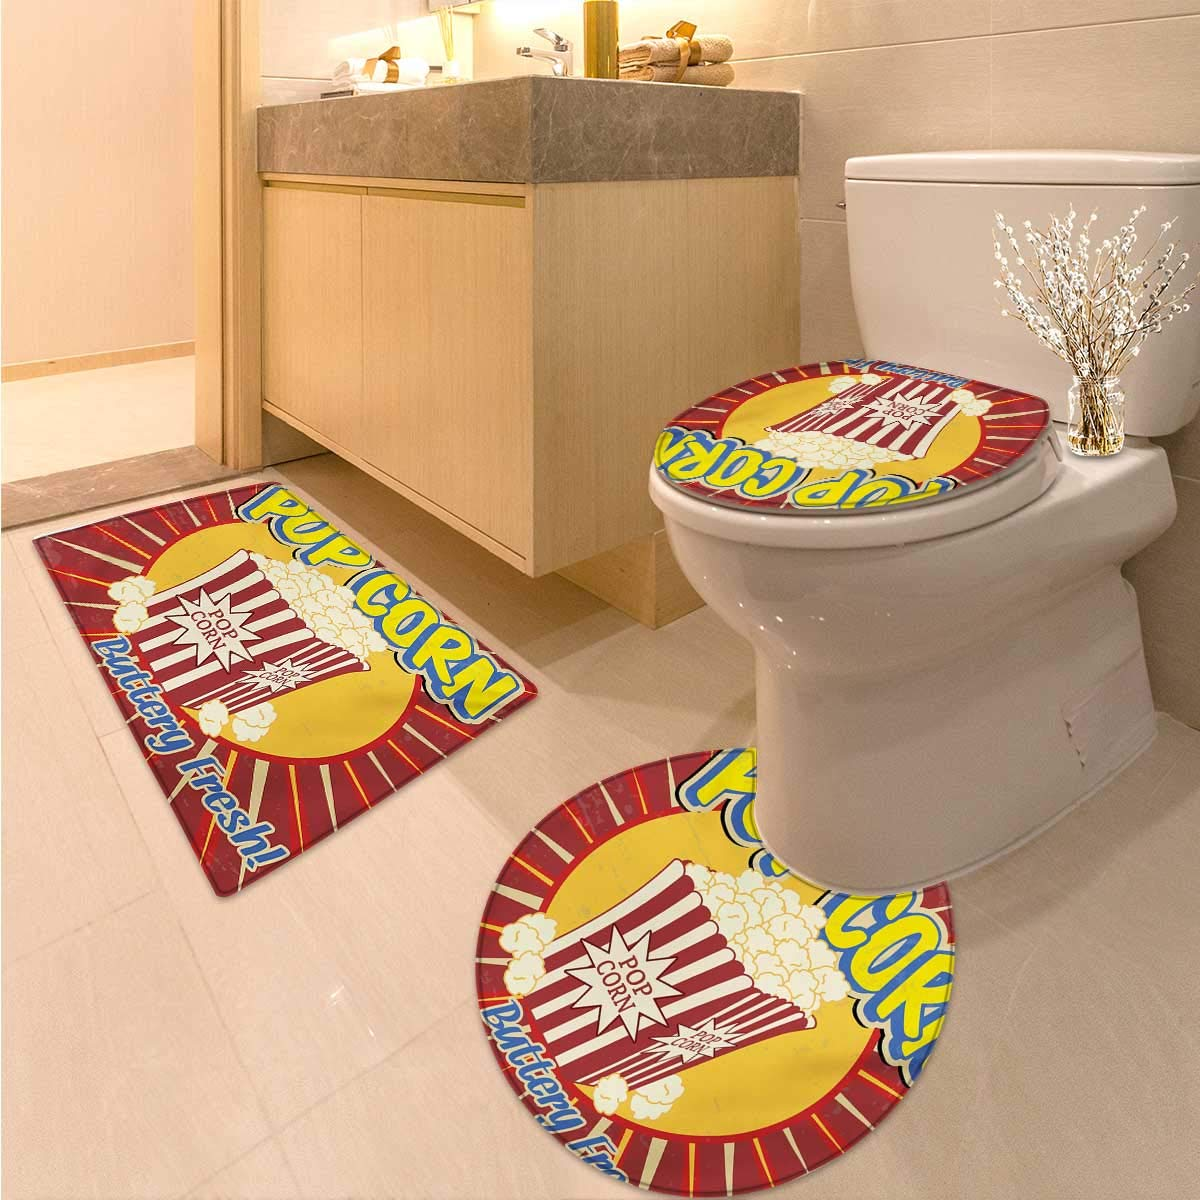 Anhuthree Retro 3 Piece Toilet mat Set Vintage Grunge Pop Corn Commercial Print Old Fashioned Cinema Movie Film Snack Artsy Elongated Toilet Lid Cover Set Multicolor